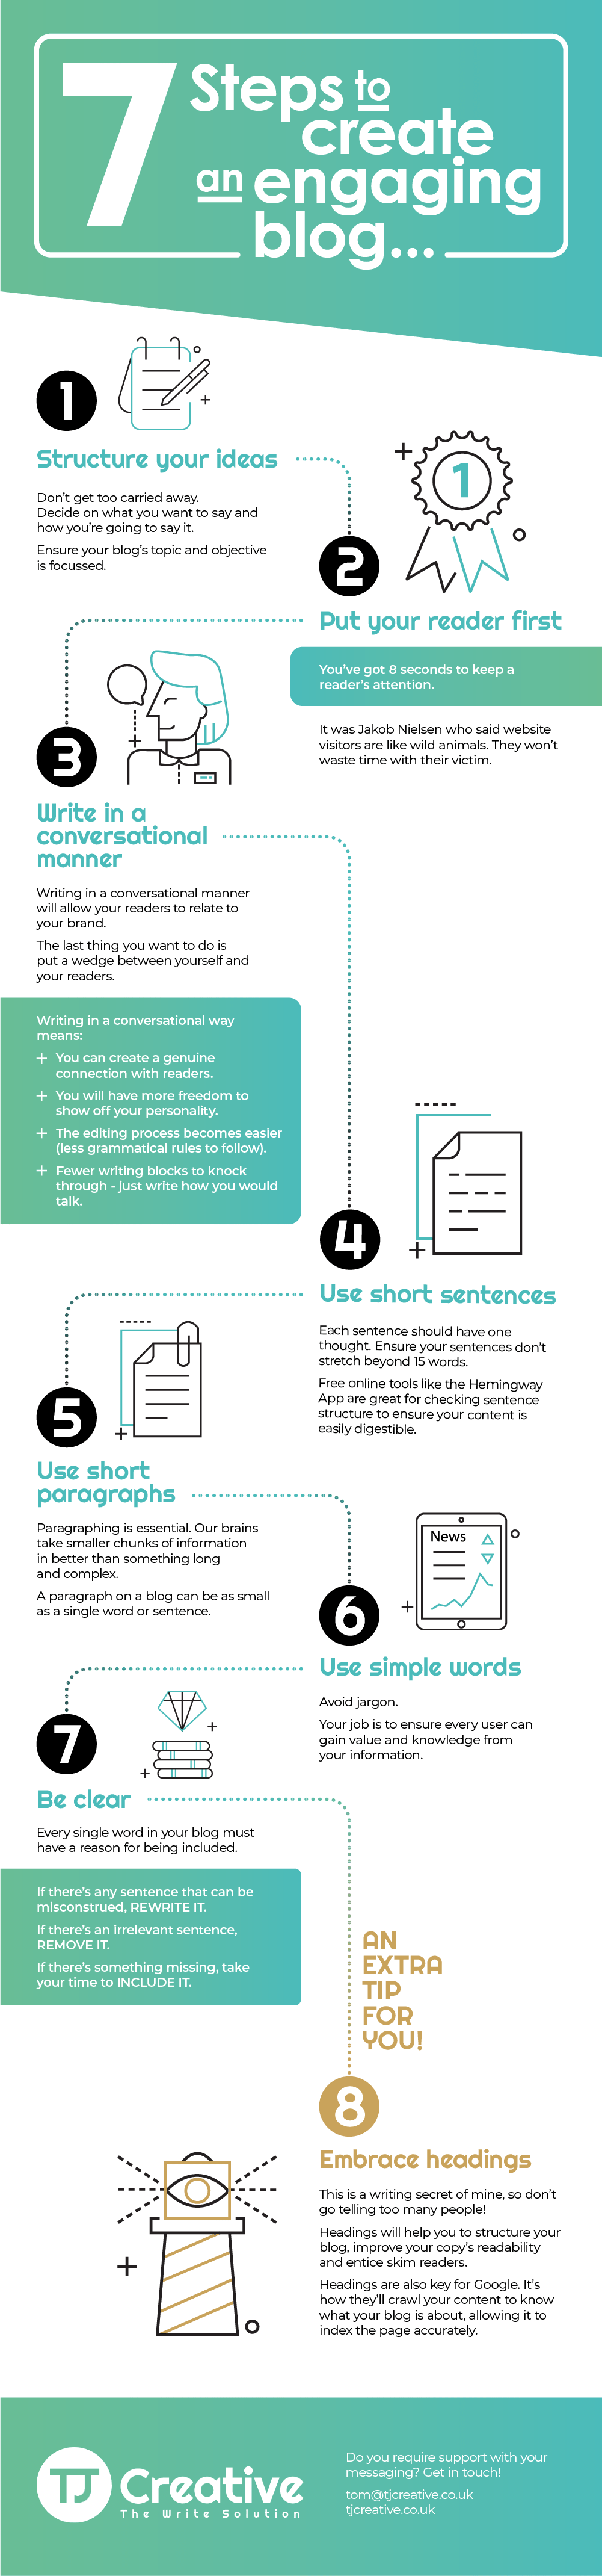 7 steps to create an engaging blog infographic